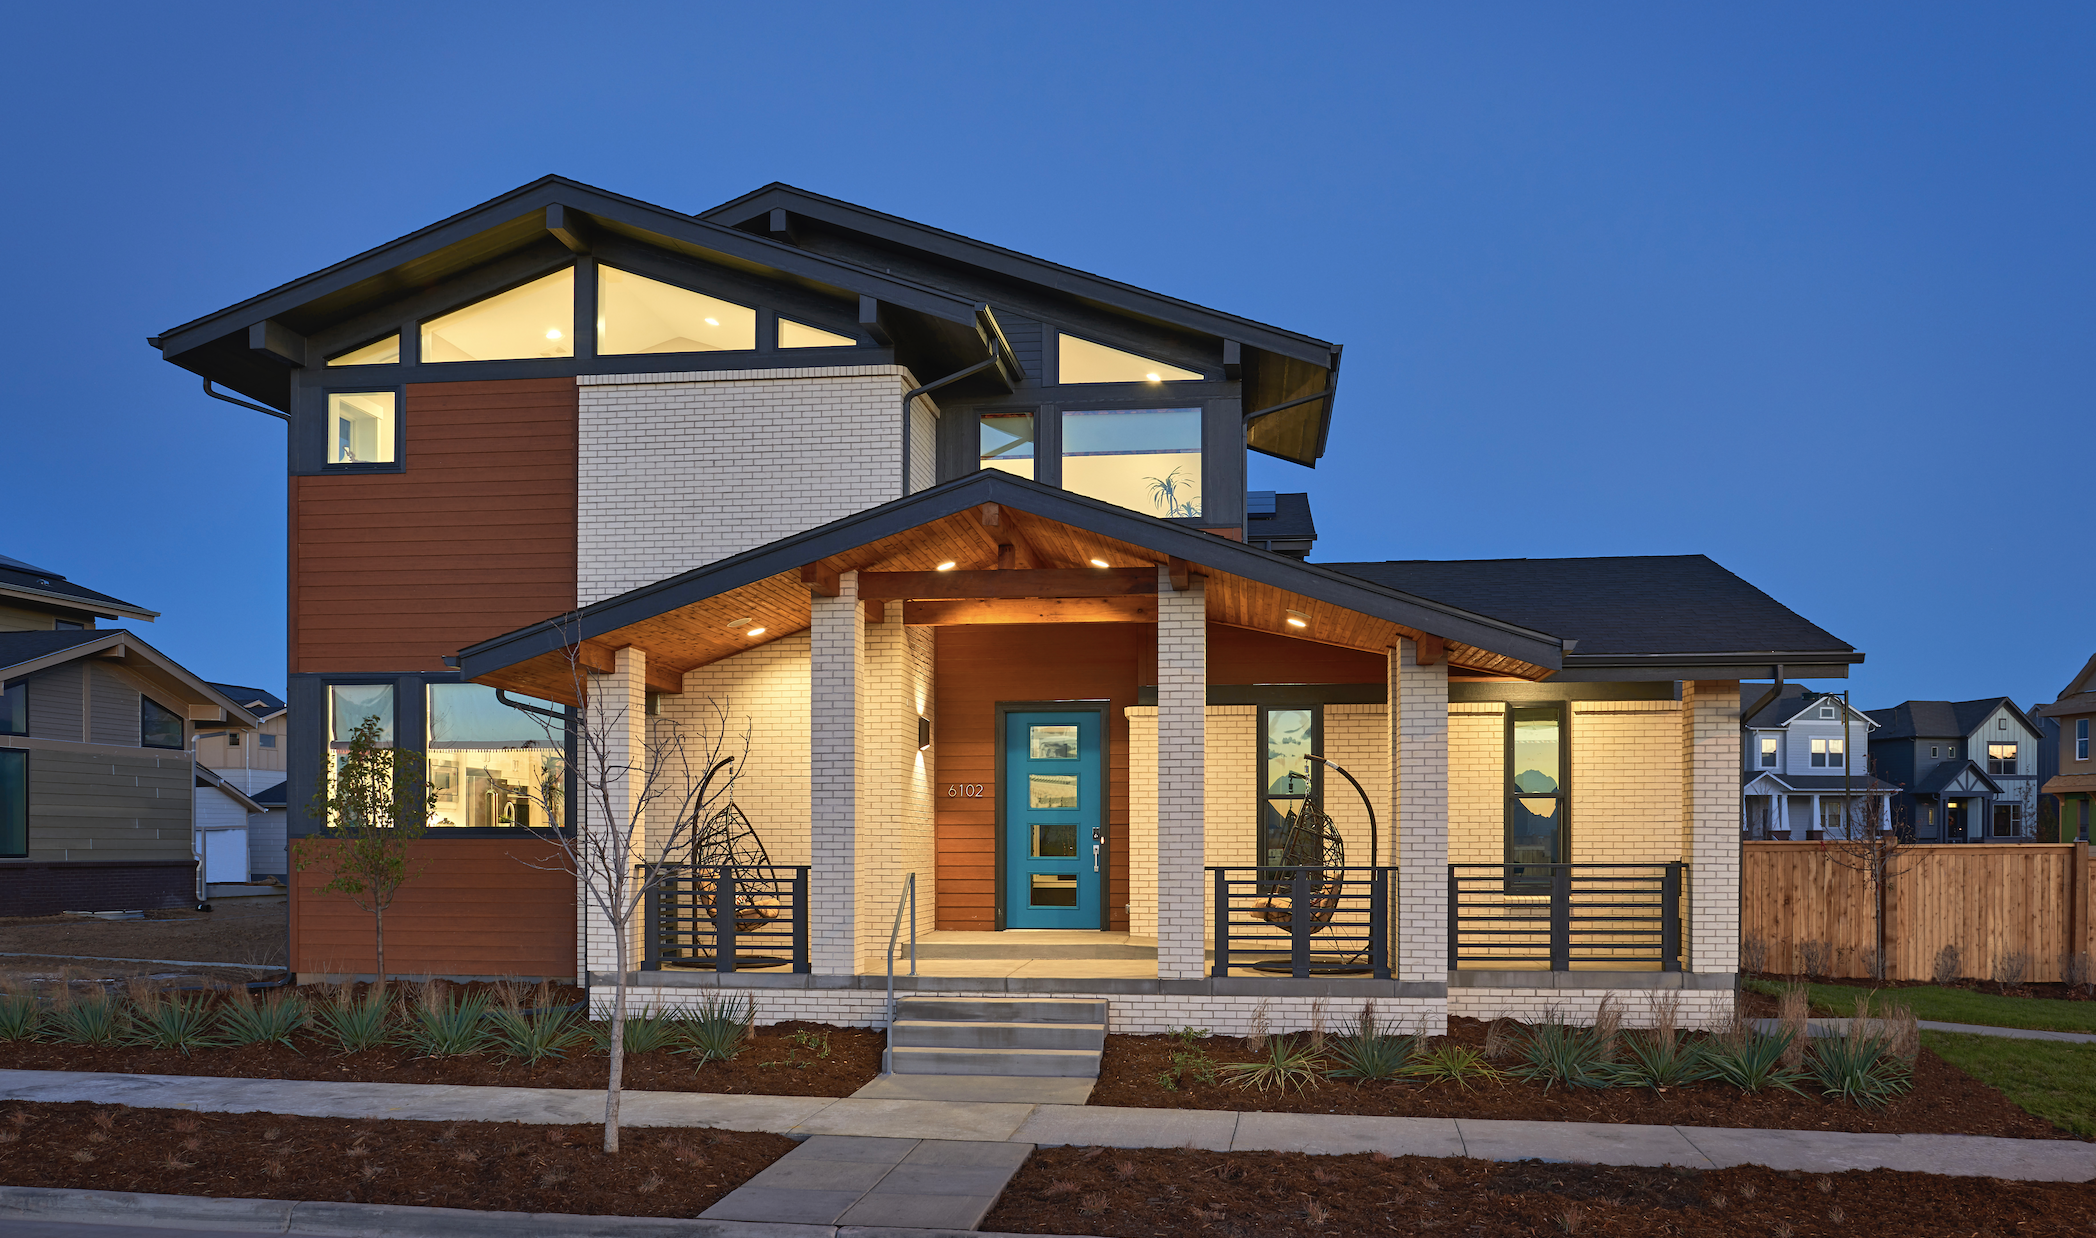 2020 National Housing Quality silver award winner Thrive house exterior